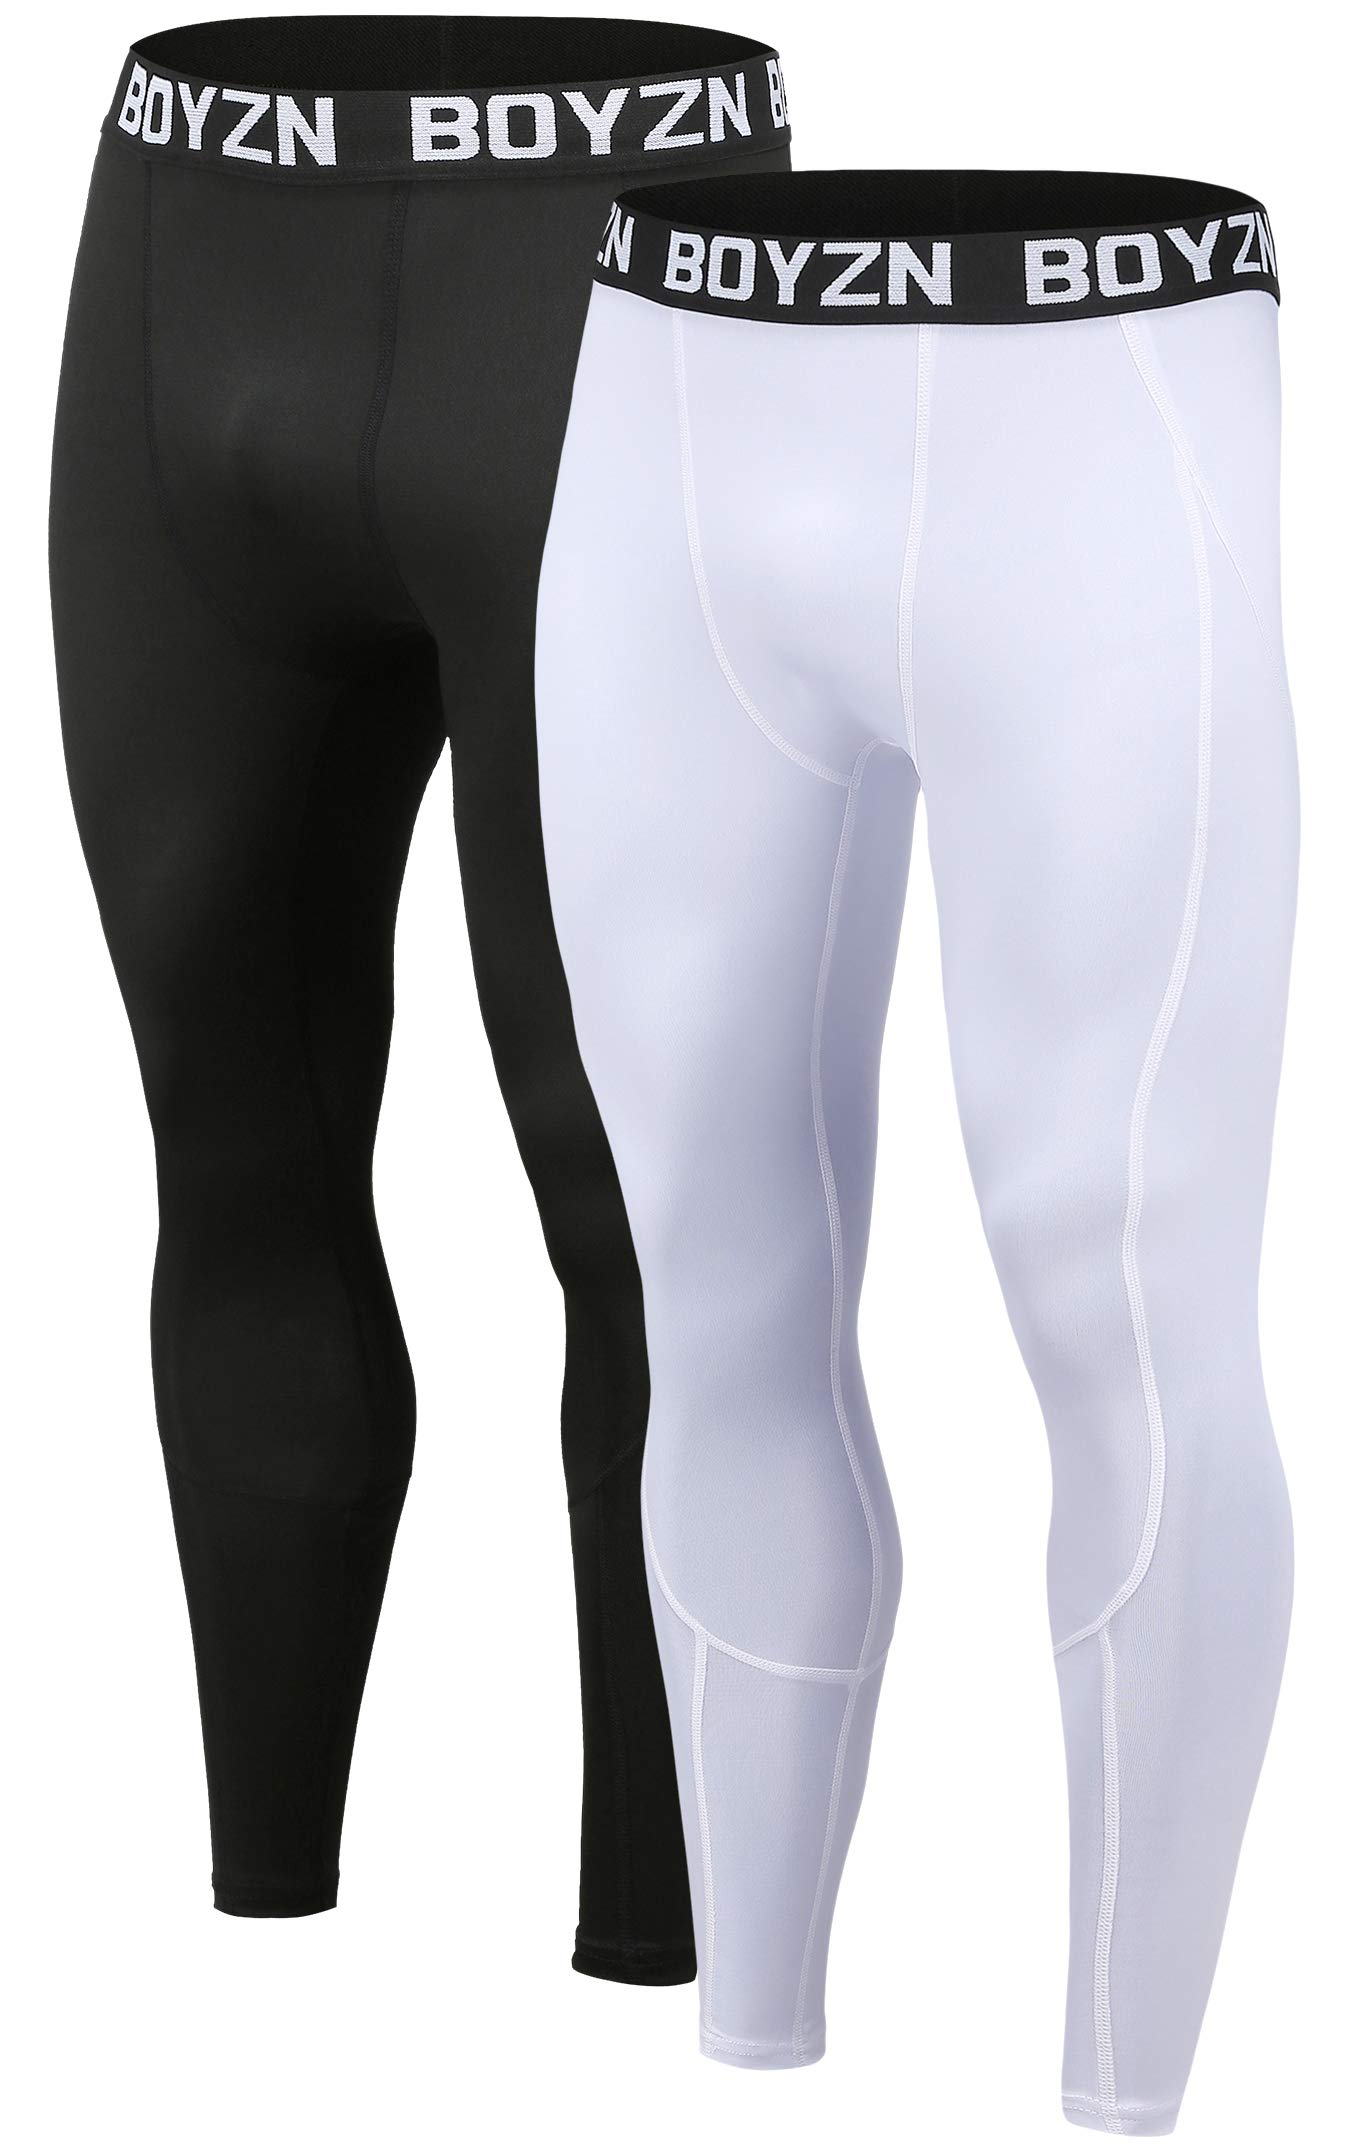 Boyzn Men's 2 Pack Sports Compression Pants Cool Dry Active Base Layer Tights Workout Running Leggings